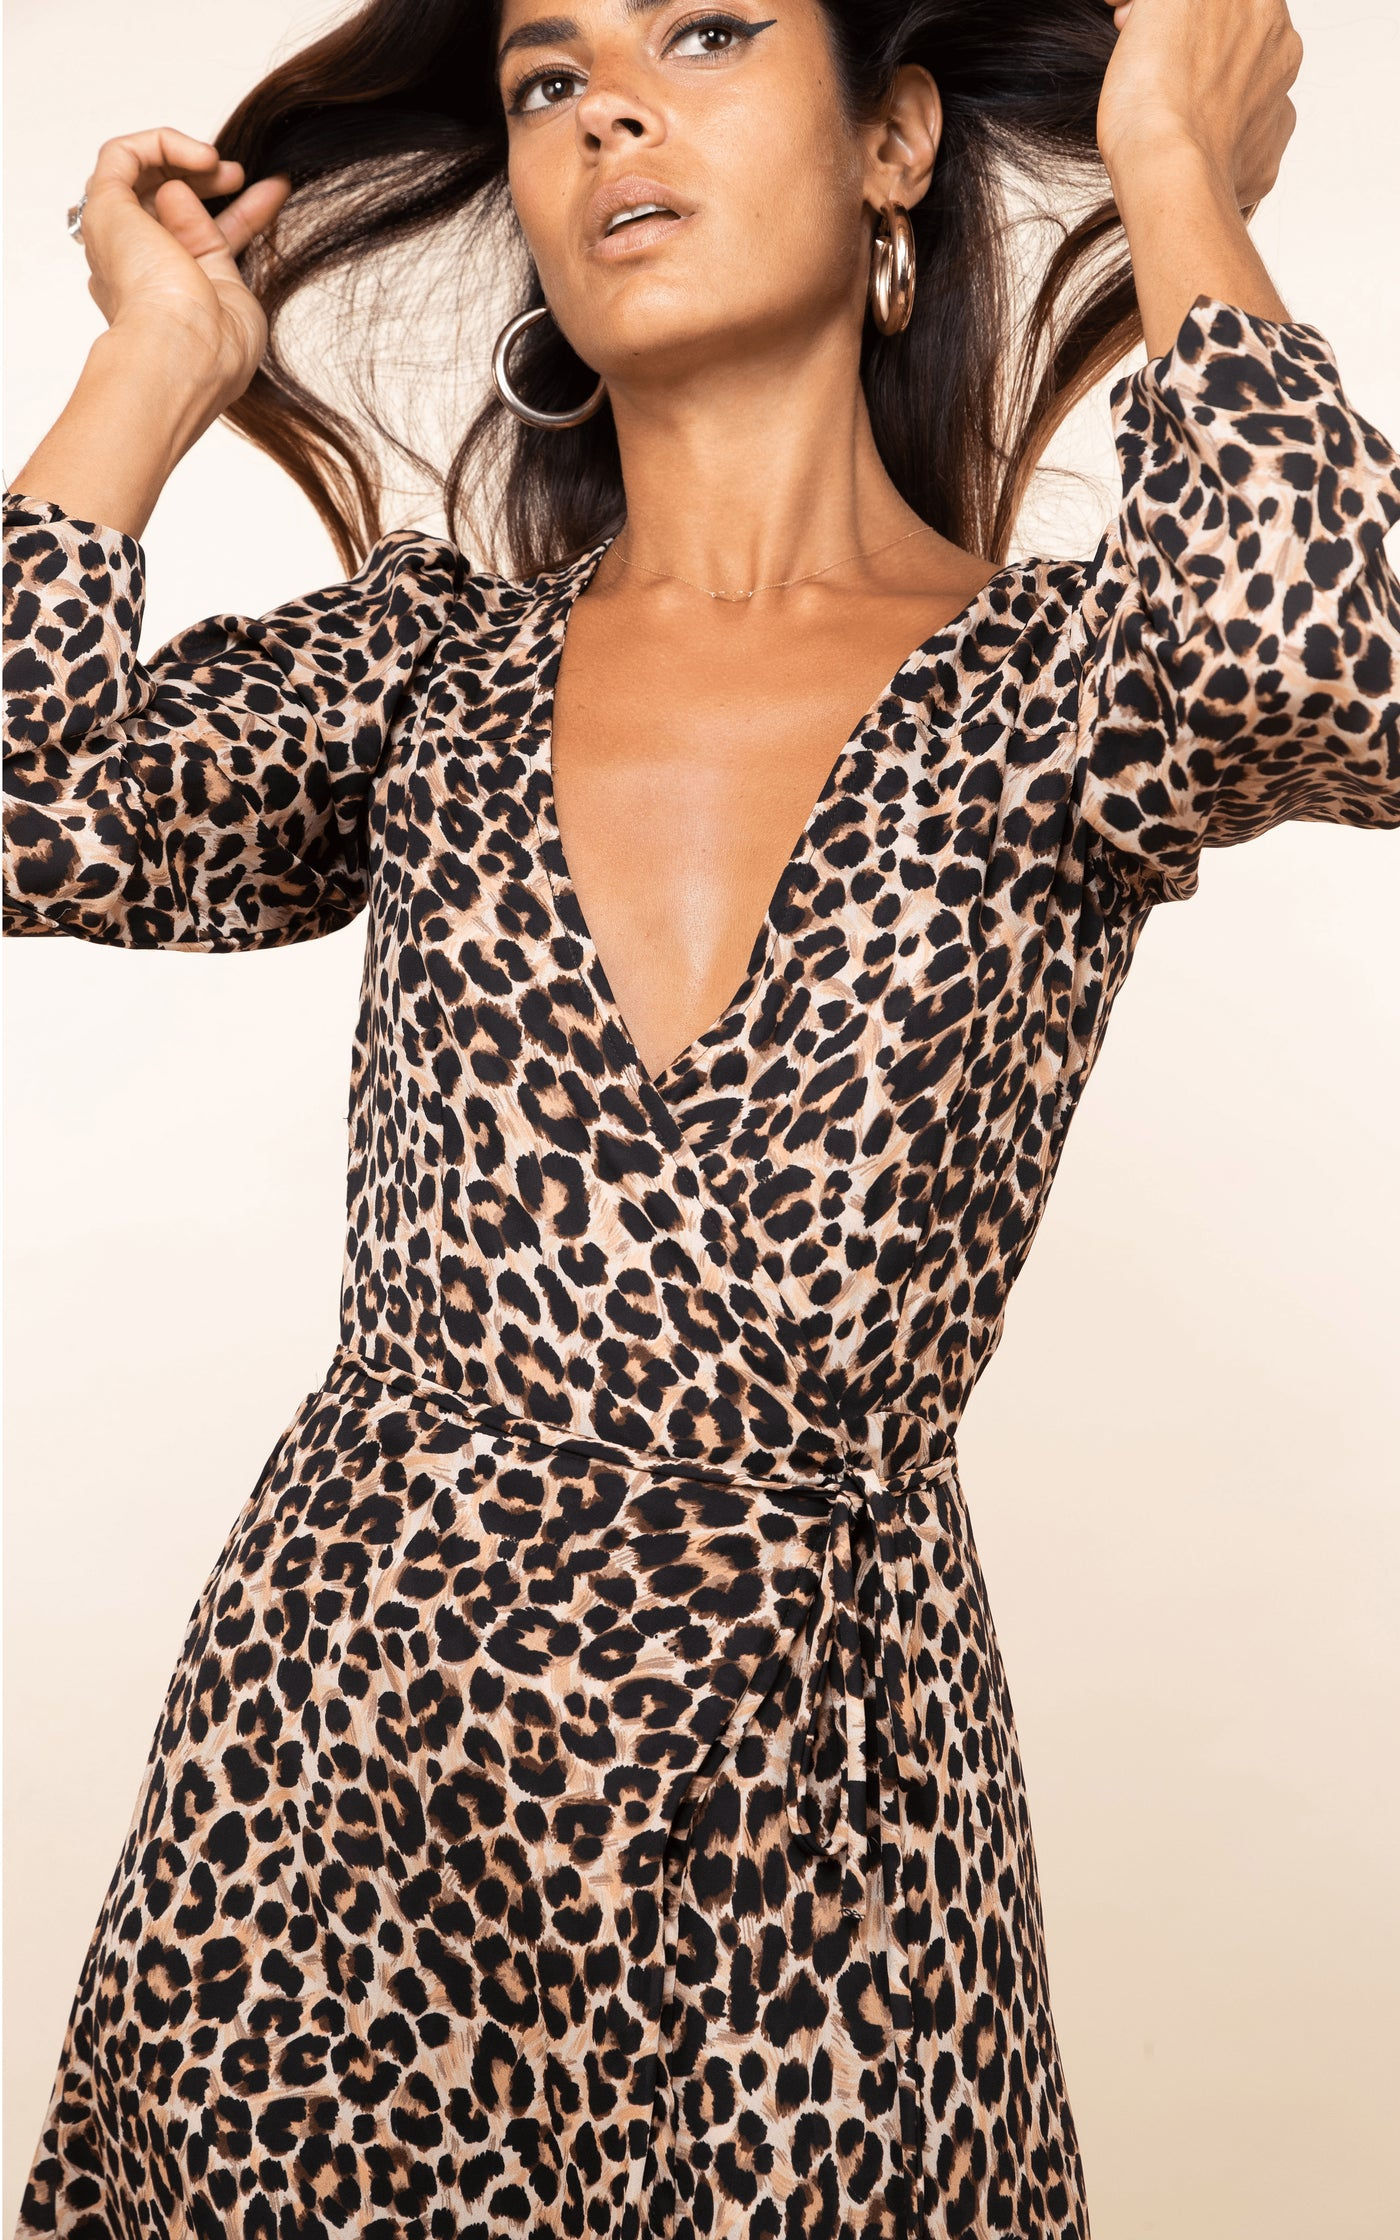 Dancing Leopard model flicks hair back wearing Jagger Maxi Dress in rich leopard print